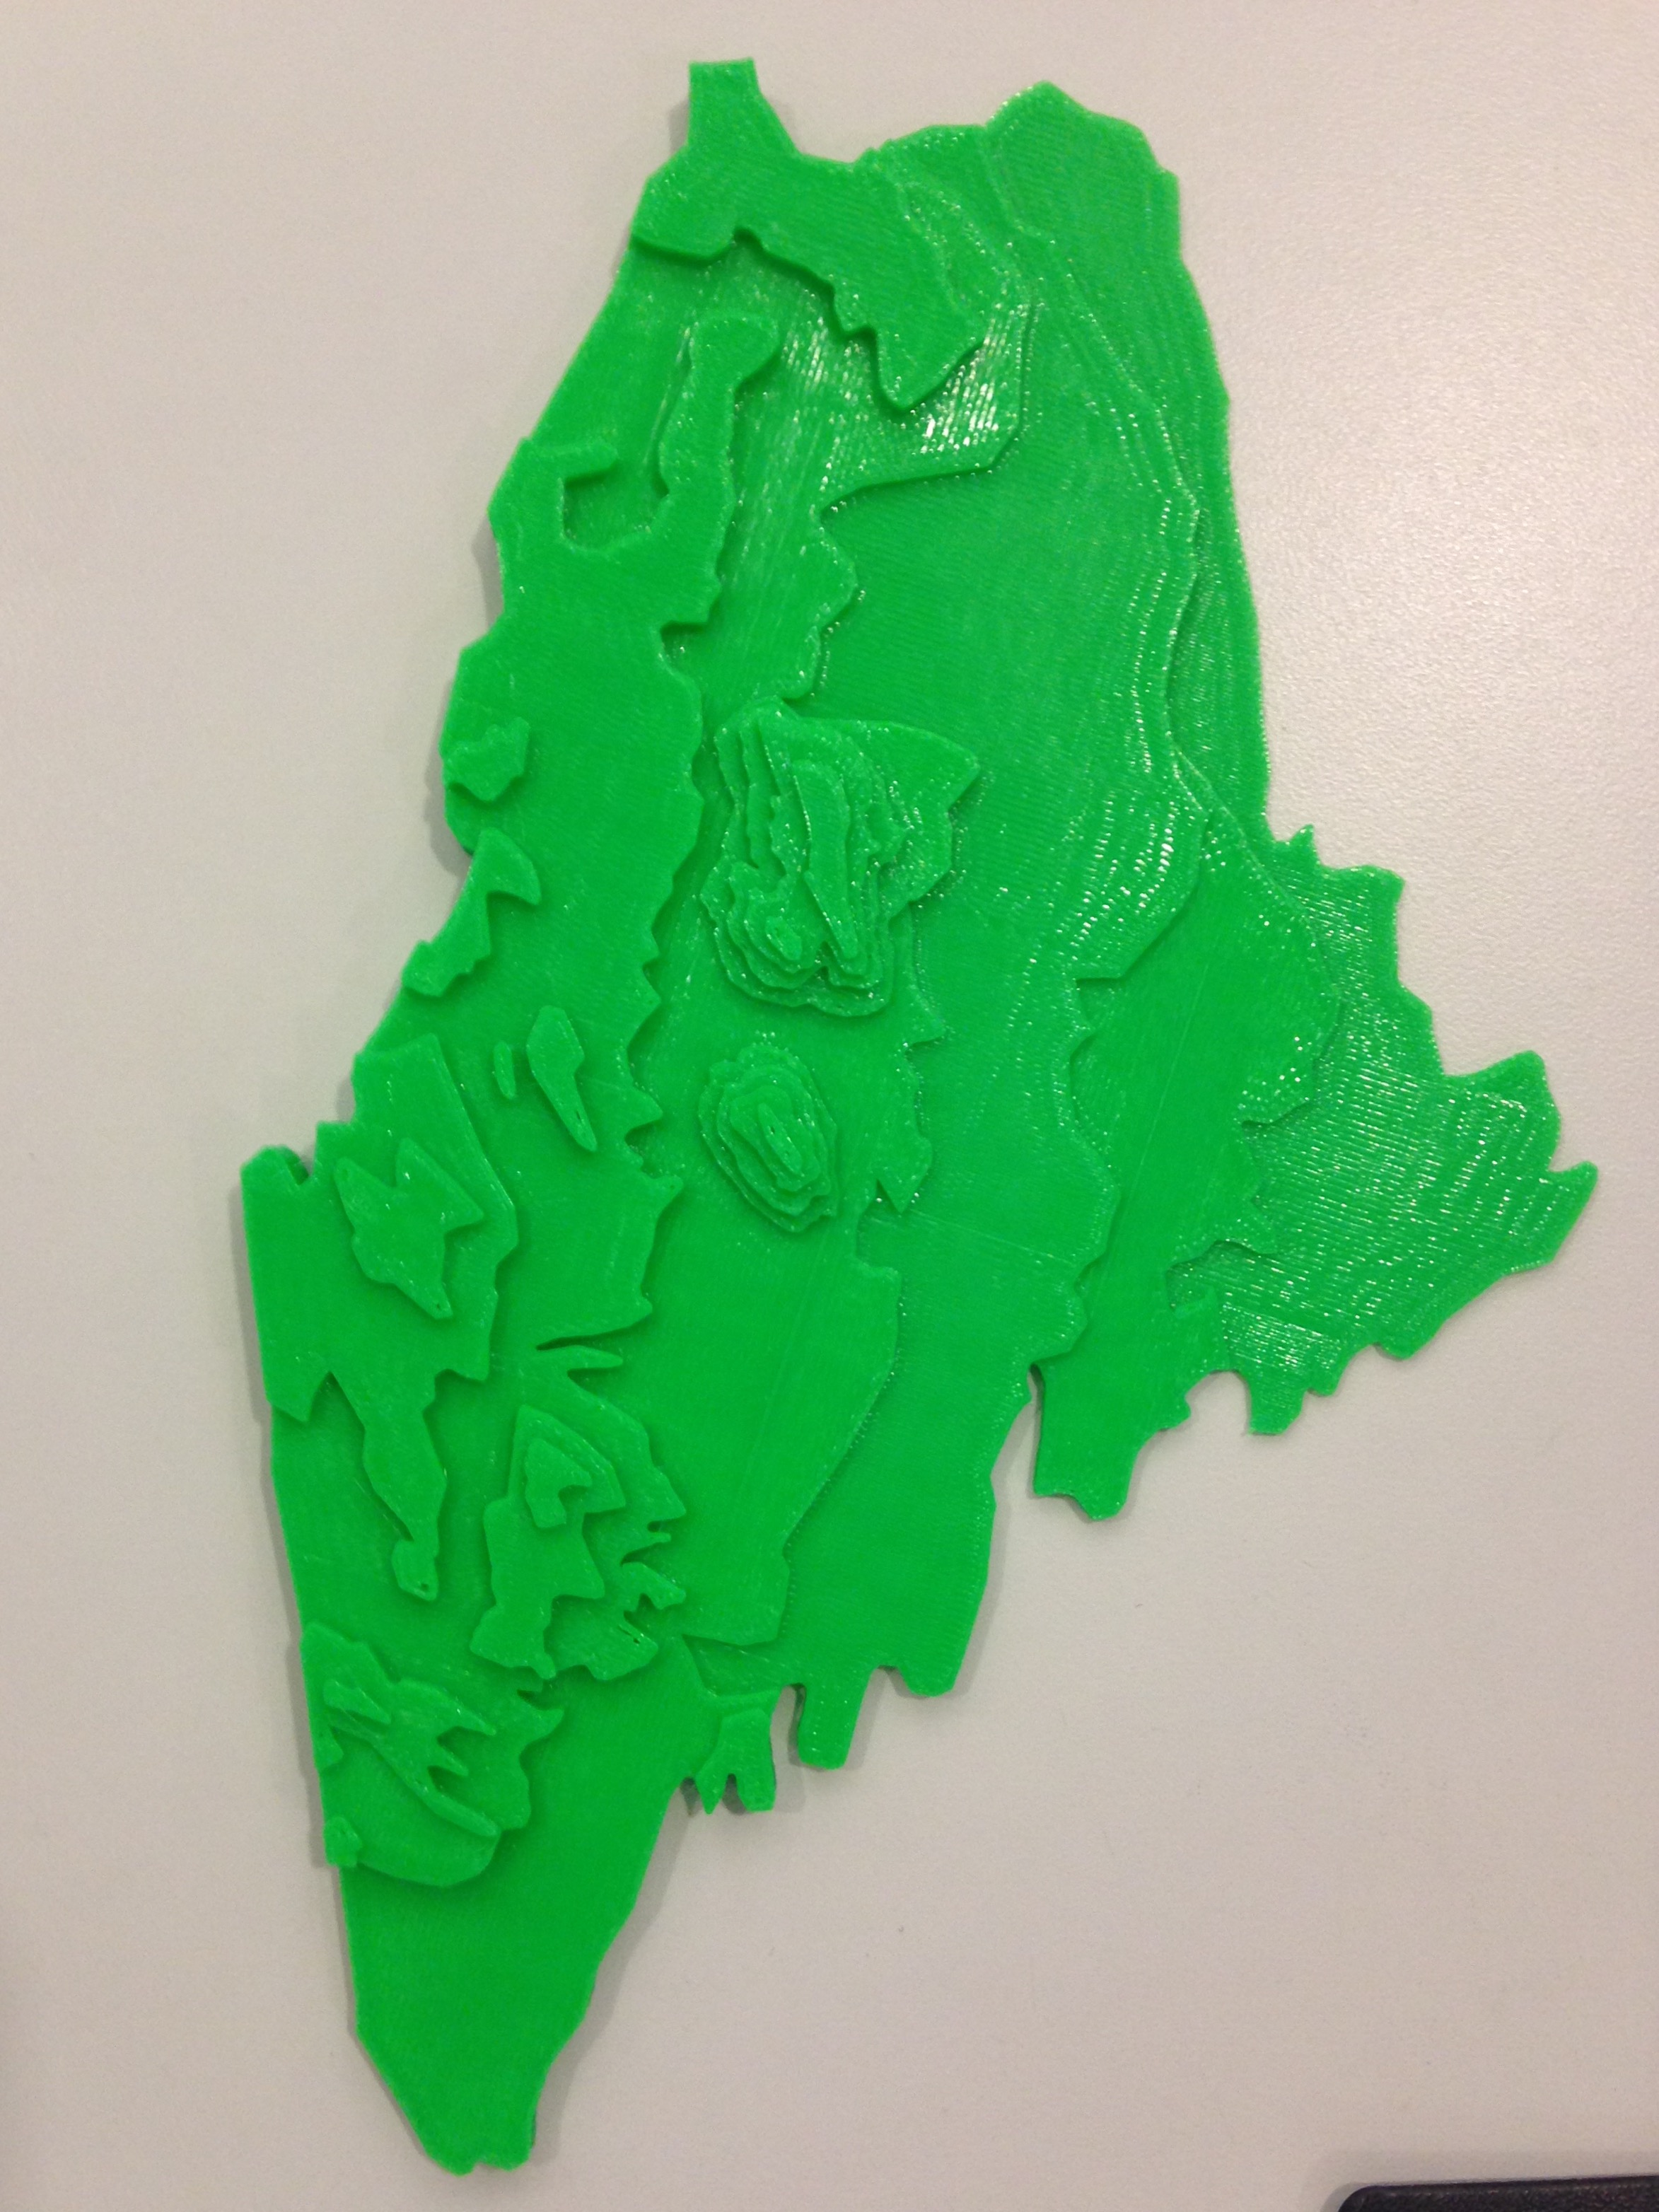 Topography Map Of Maine.Elevation Map Of Maine By Harper C